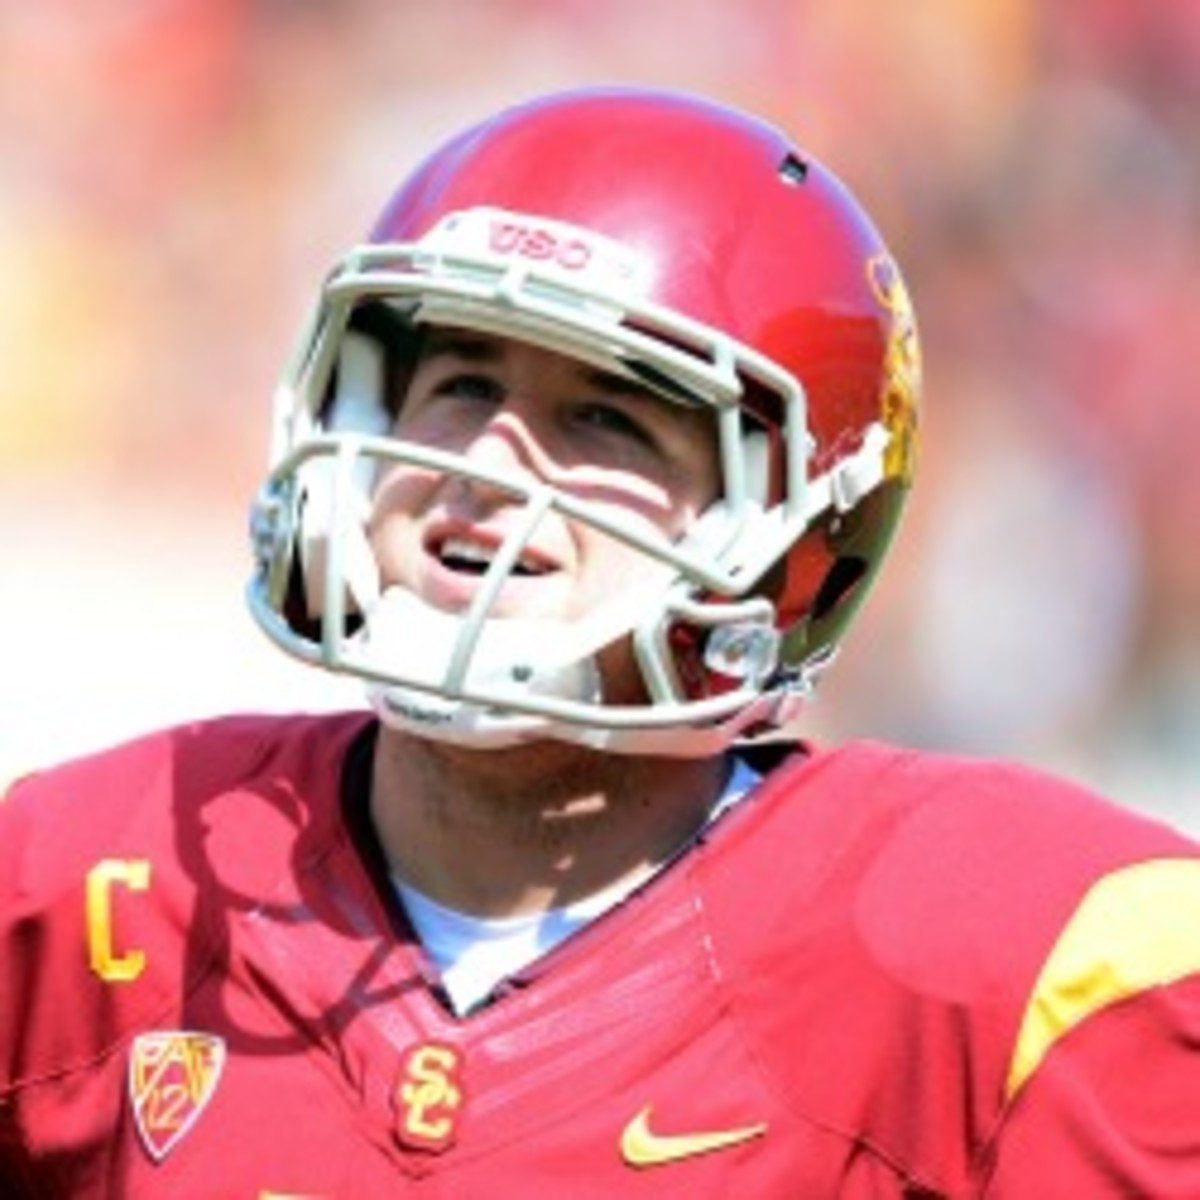 Quarterback Matt Barkley is projected as a second-round pick after throwing 116 touchdown passed during his USC career. (Harry How/Getty Images)